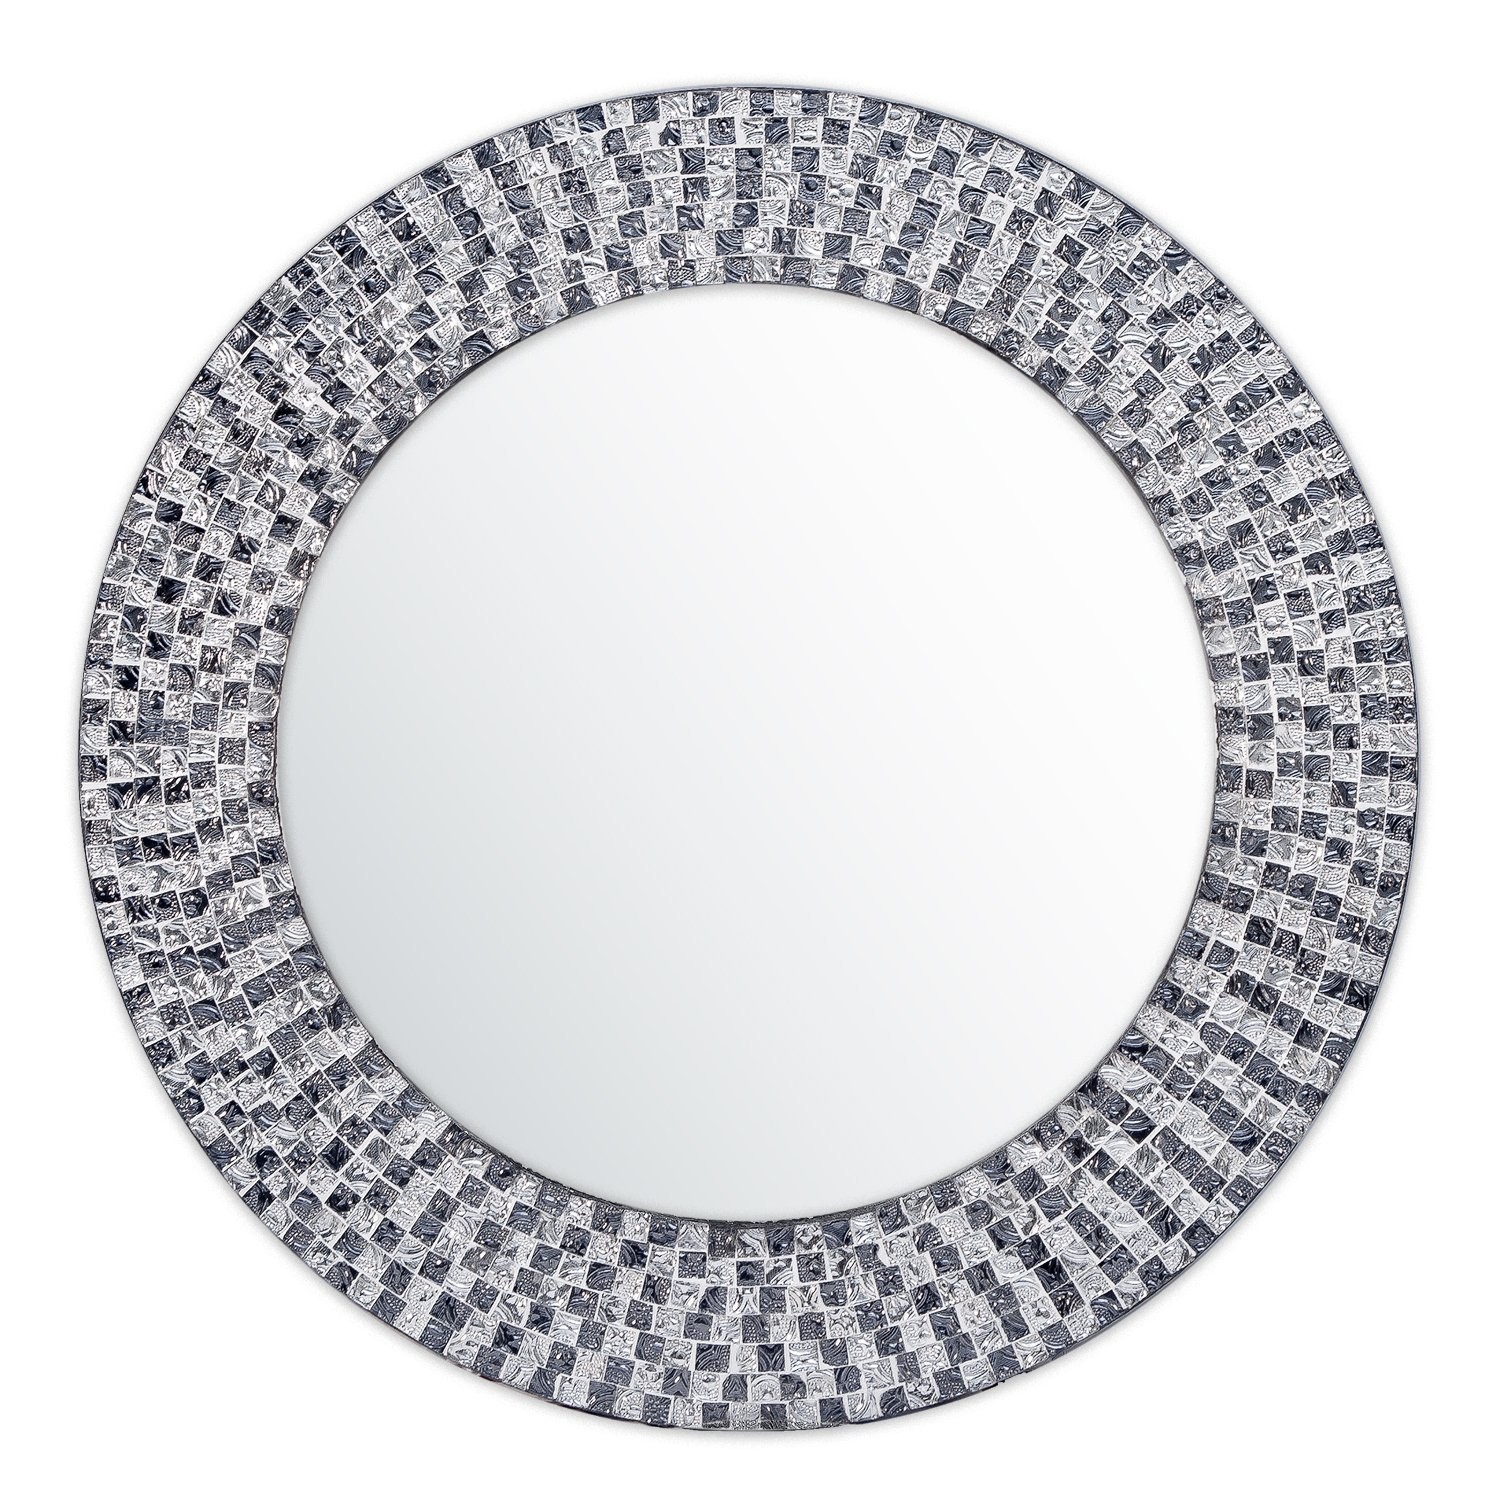 "Decorshore 20"" Jewel Tone Accent Mirror, Round Decorative Wall Mirror Embossed Glass Mosaic Tile Frame (onyx Black & Silver Topaz) With Regard To Silver Frame Accent Mirrors (View 18 of 30)"